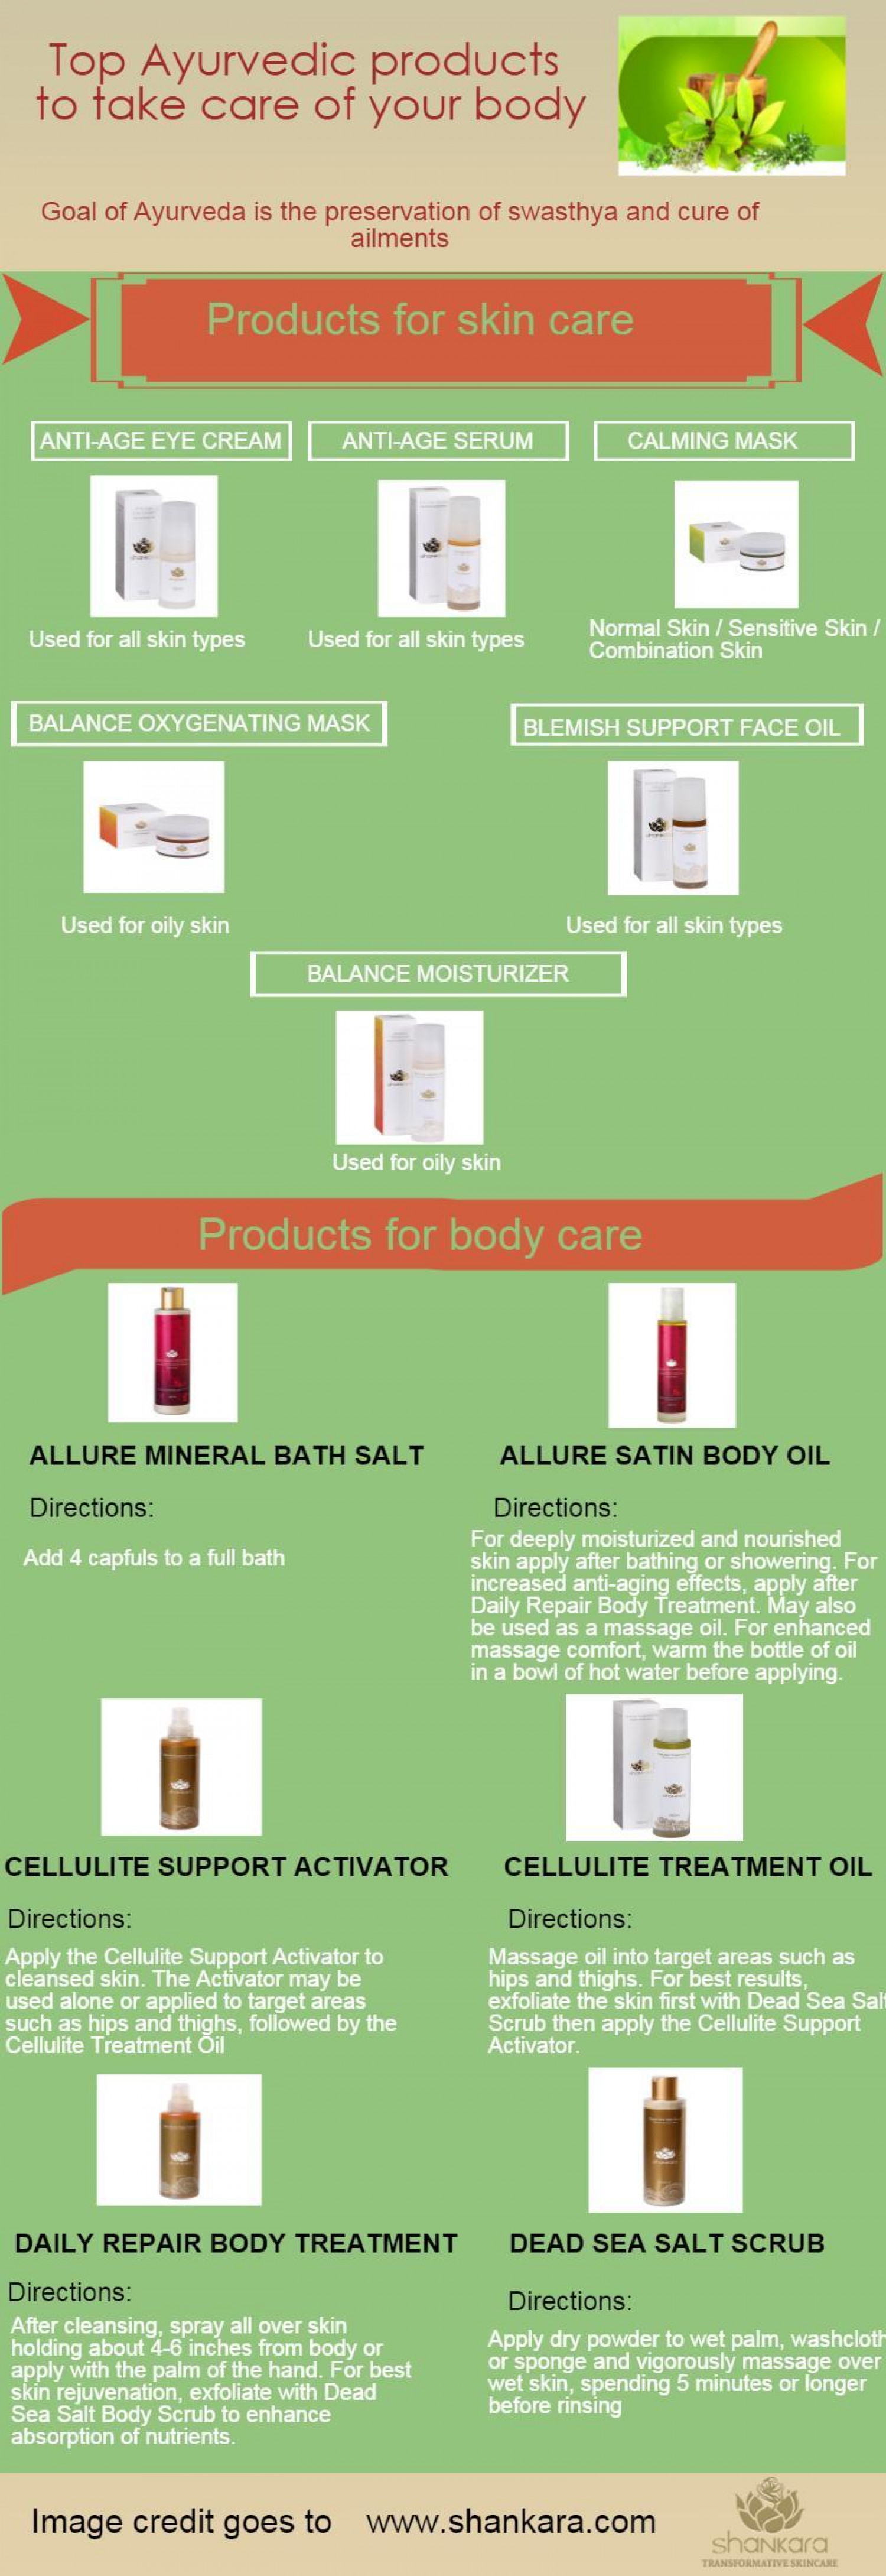 Top Ayurvedic products to take care of your body Infographic